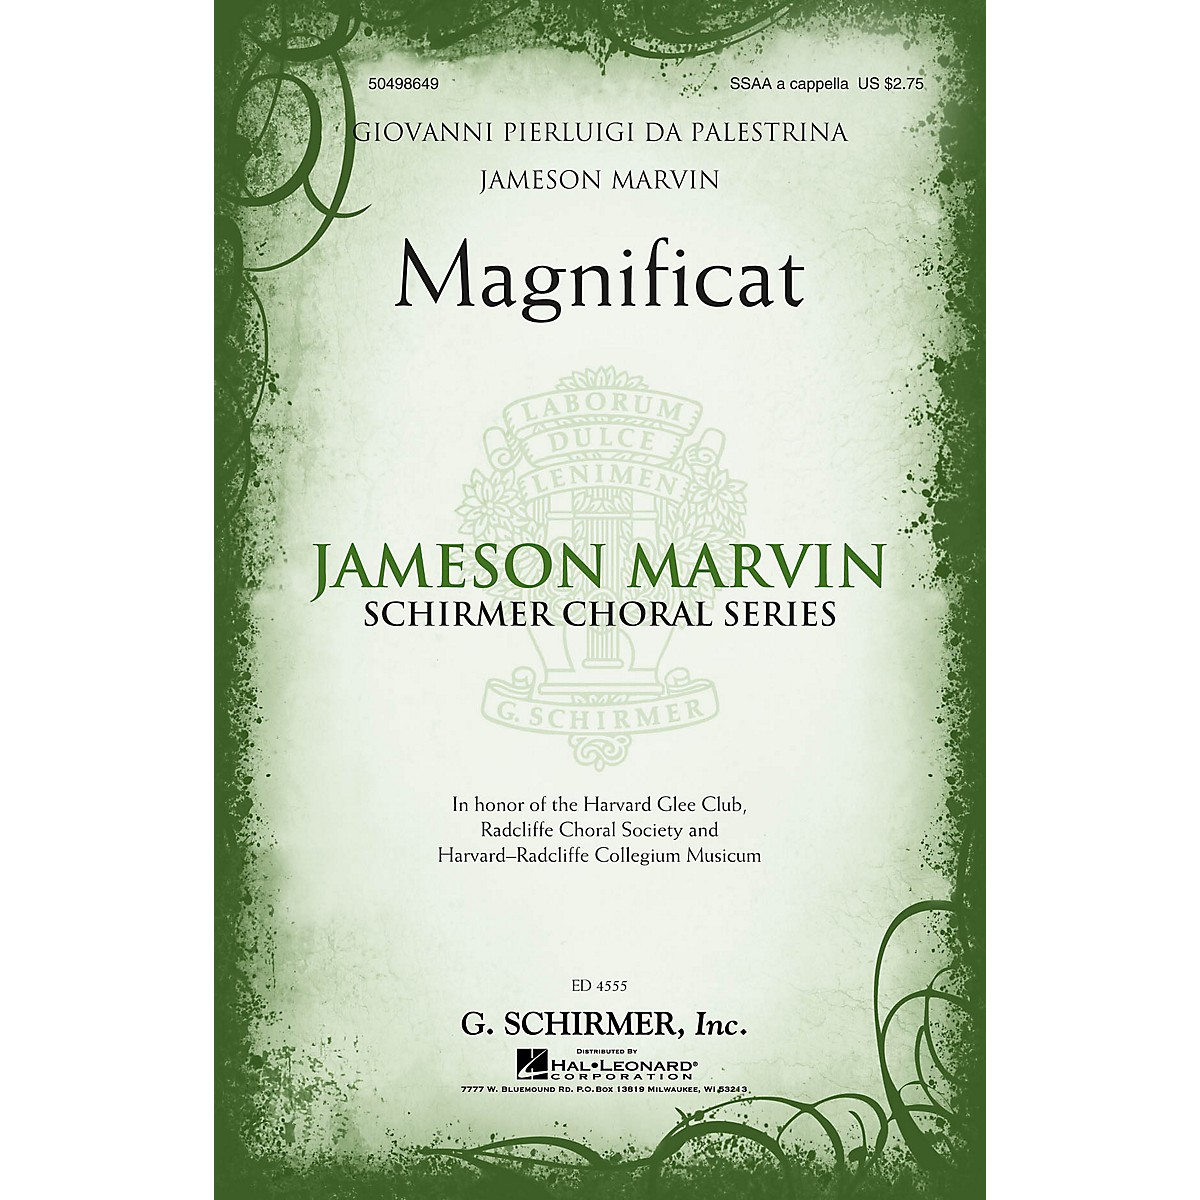 G. Schirmer Magnificat (Jameson Marvin Choral Series) SSAA A Cappella arranged by Jameson Marvin